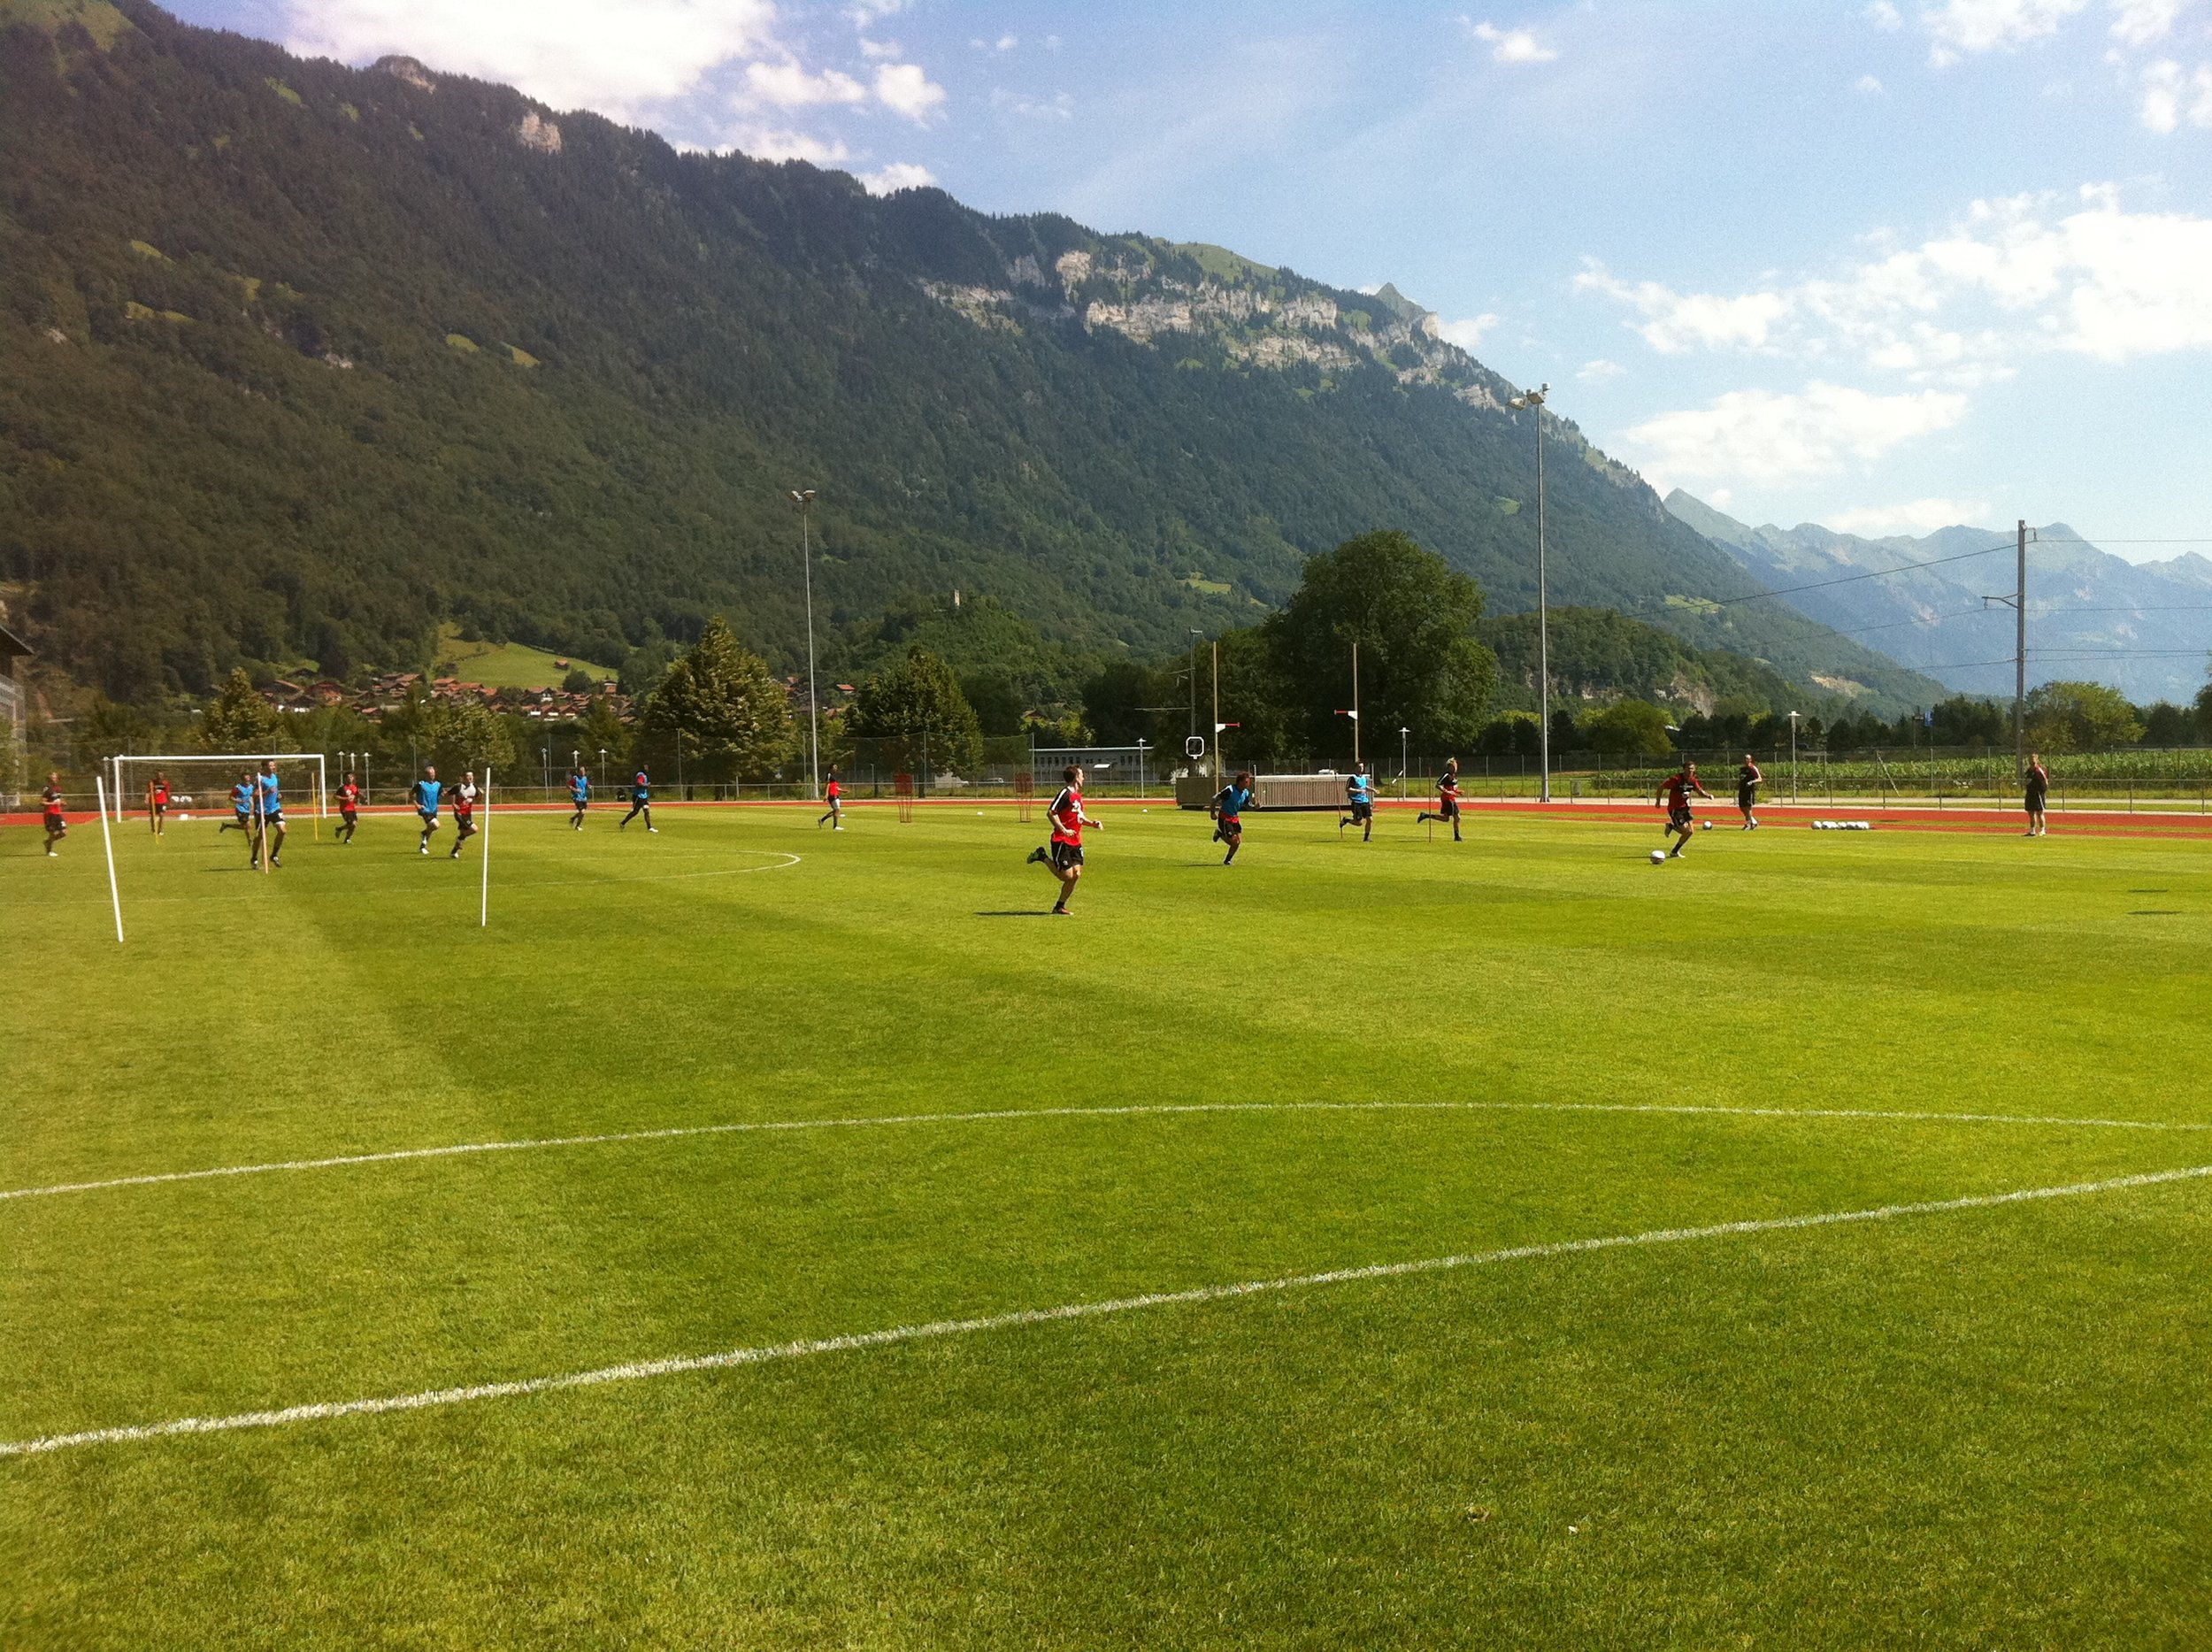 Surrounded by breathtaking scenery during pre-season training.This is in beautiful Interlaken in Switzerland with Southampton in 2011.